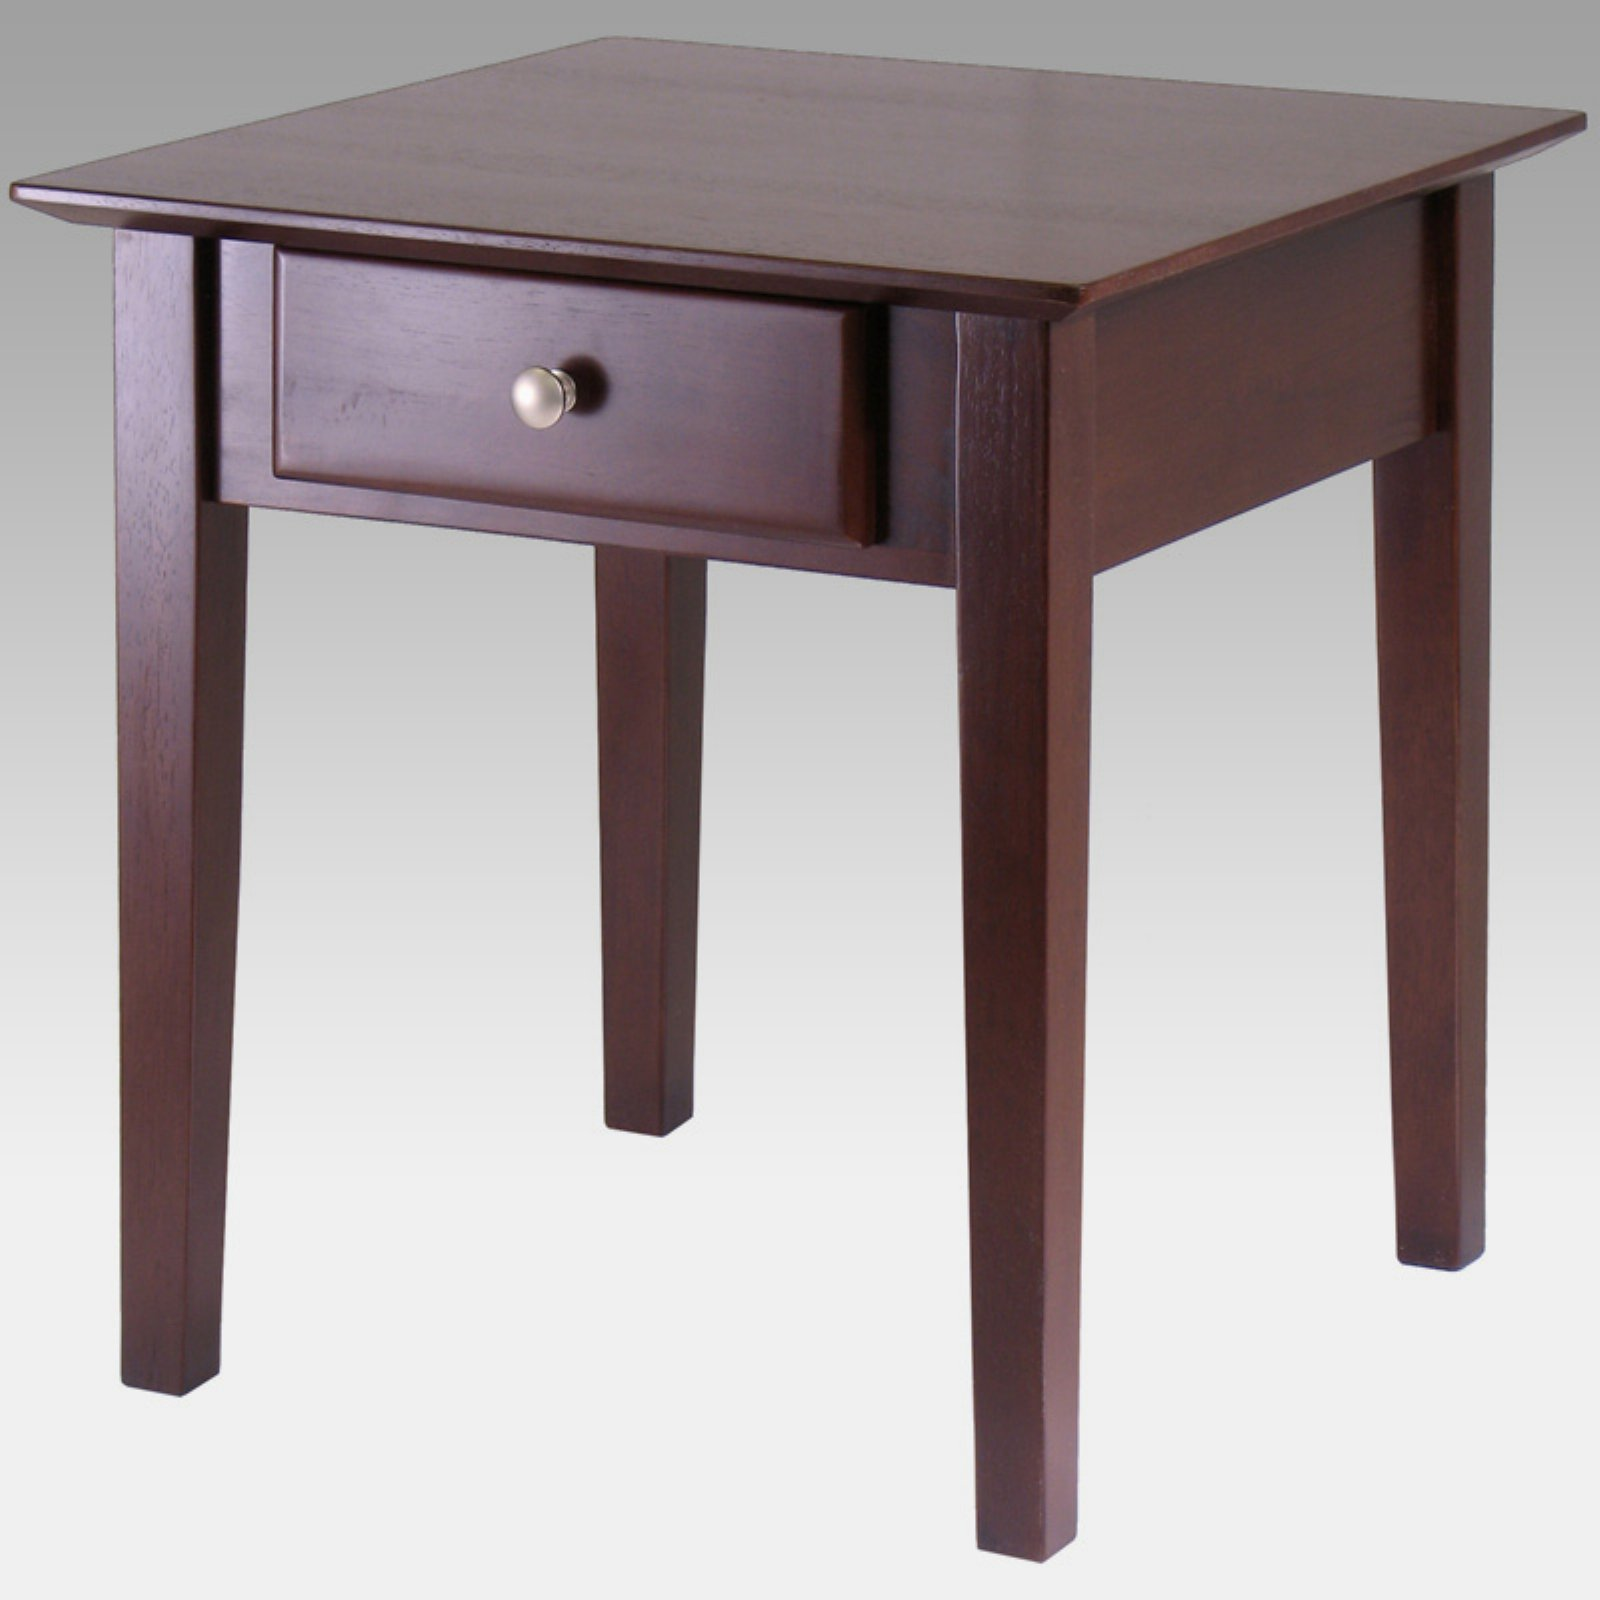 Beau Winsome Wood Rochester Shaker Legs End Table, Walnut Finish